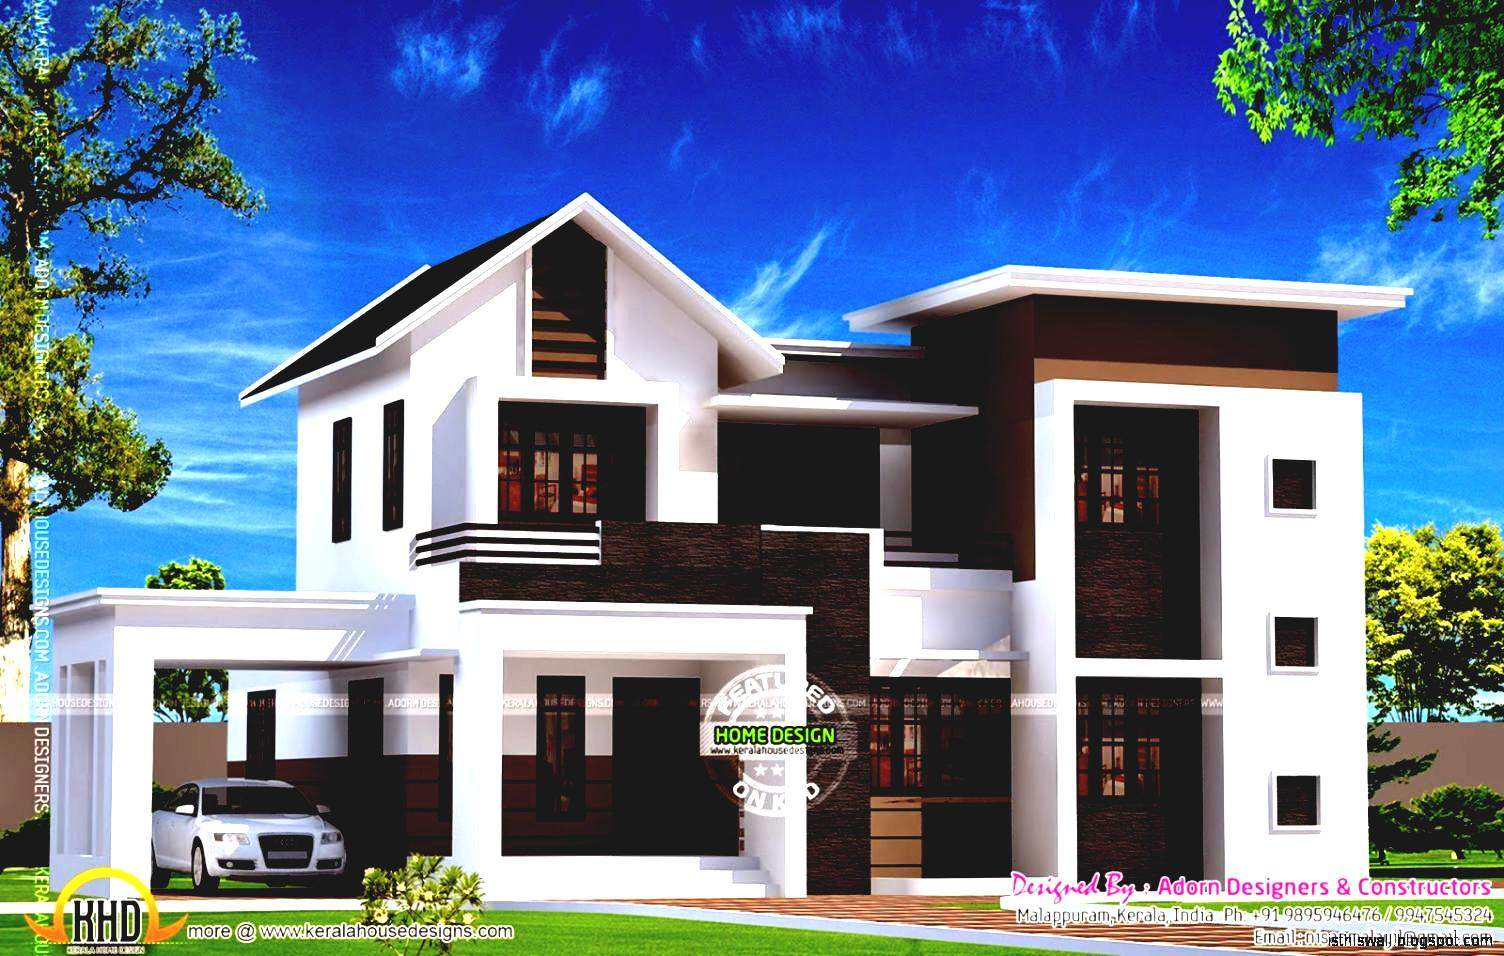 New Kerala Home Designs Awesome